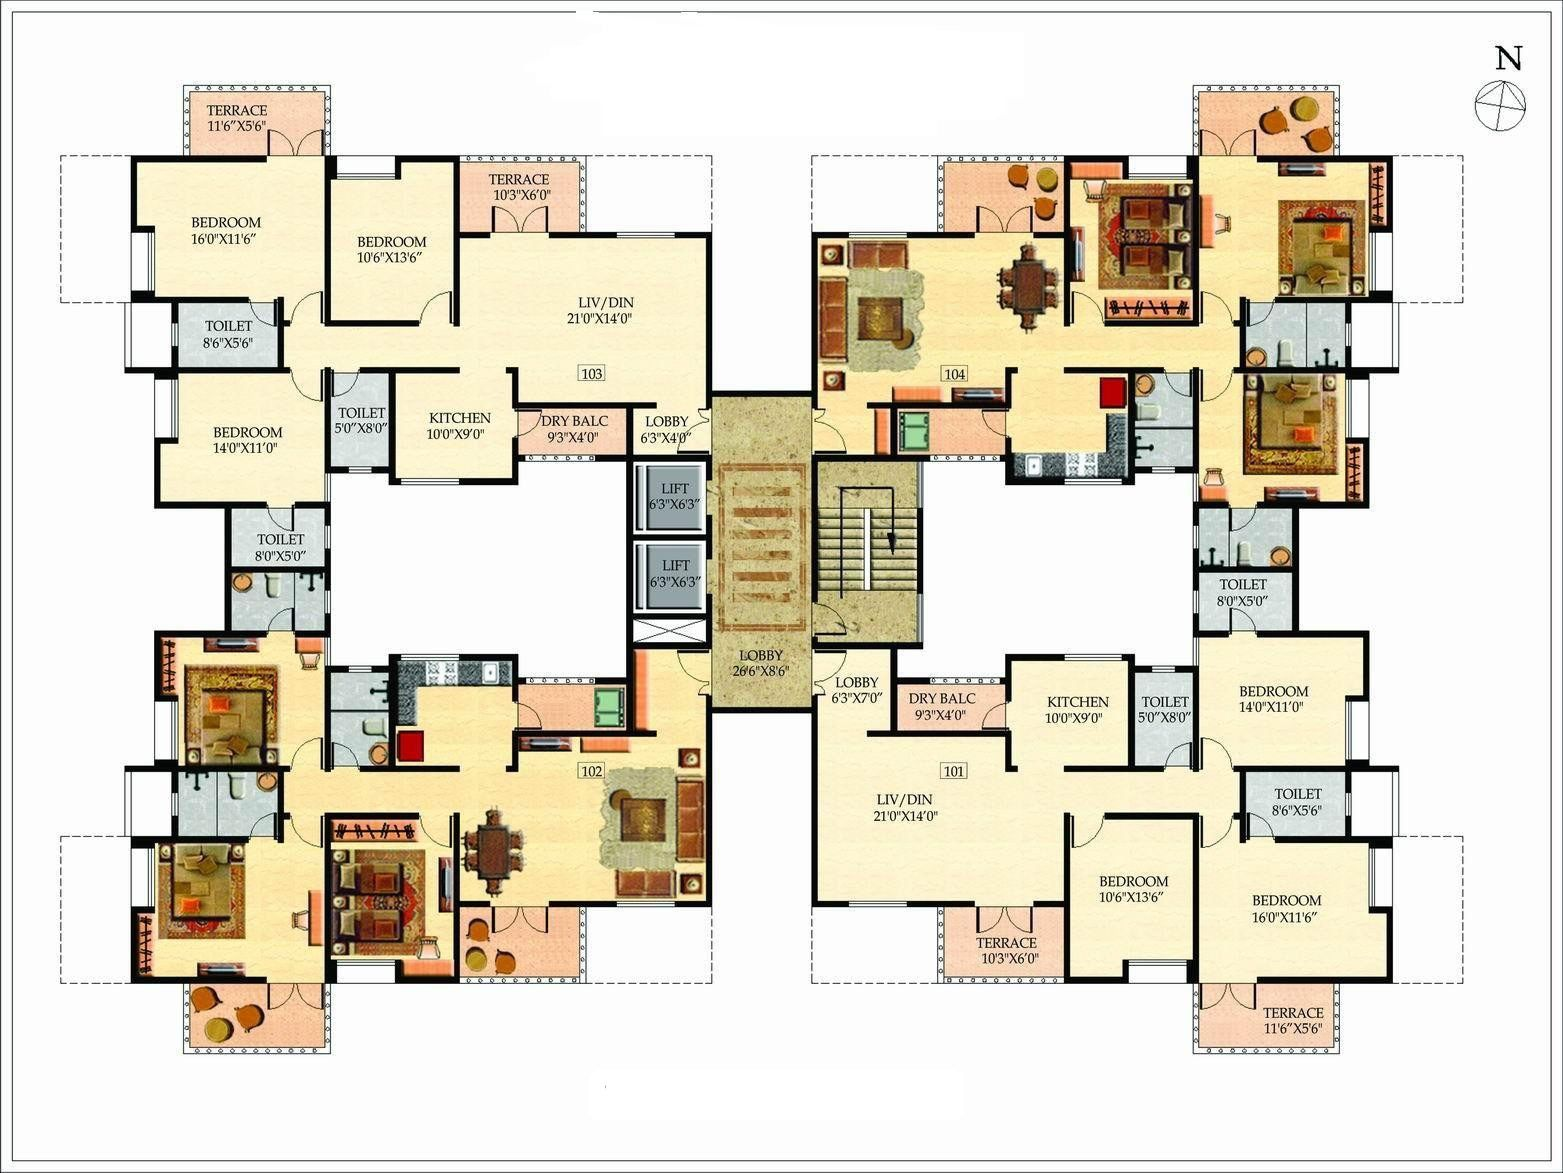 6 bedroom mansion floor plans design ideas 2017 2018 for Best floor plan